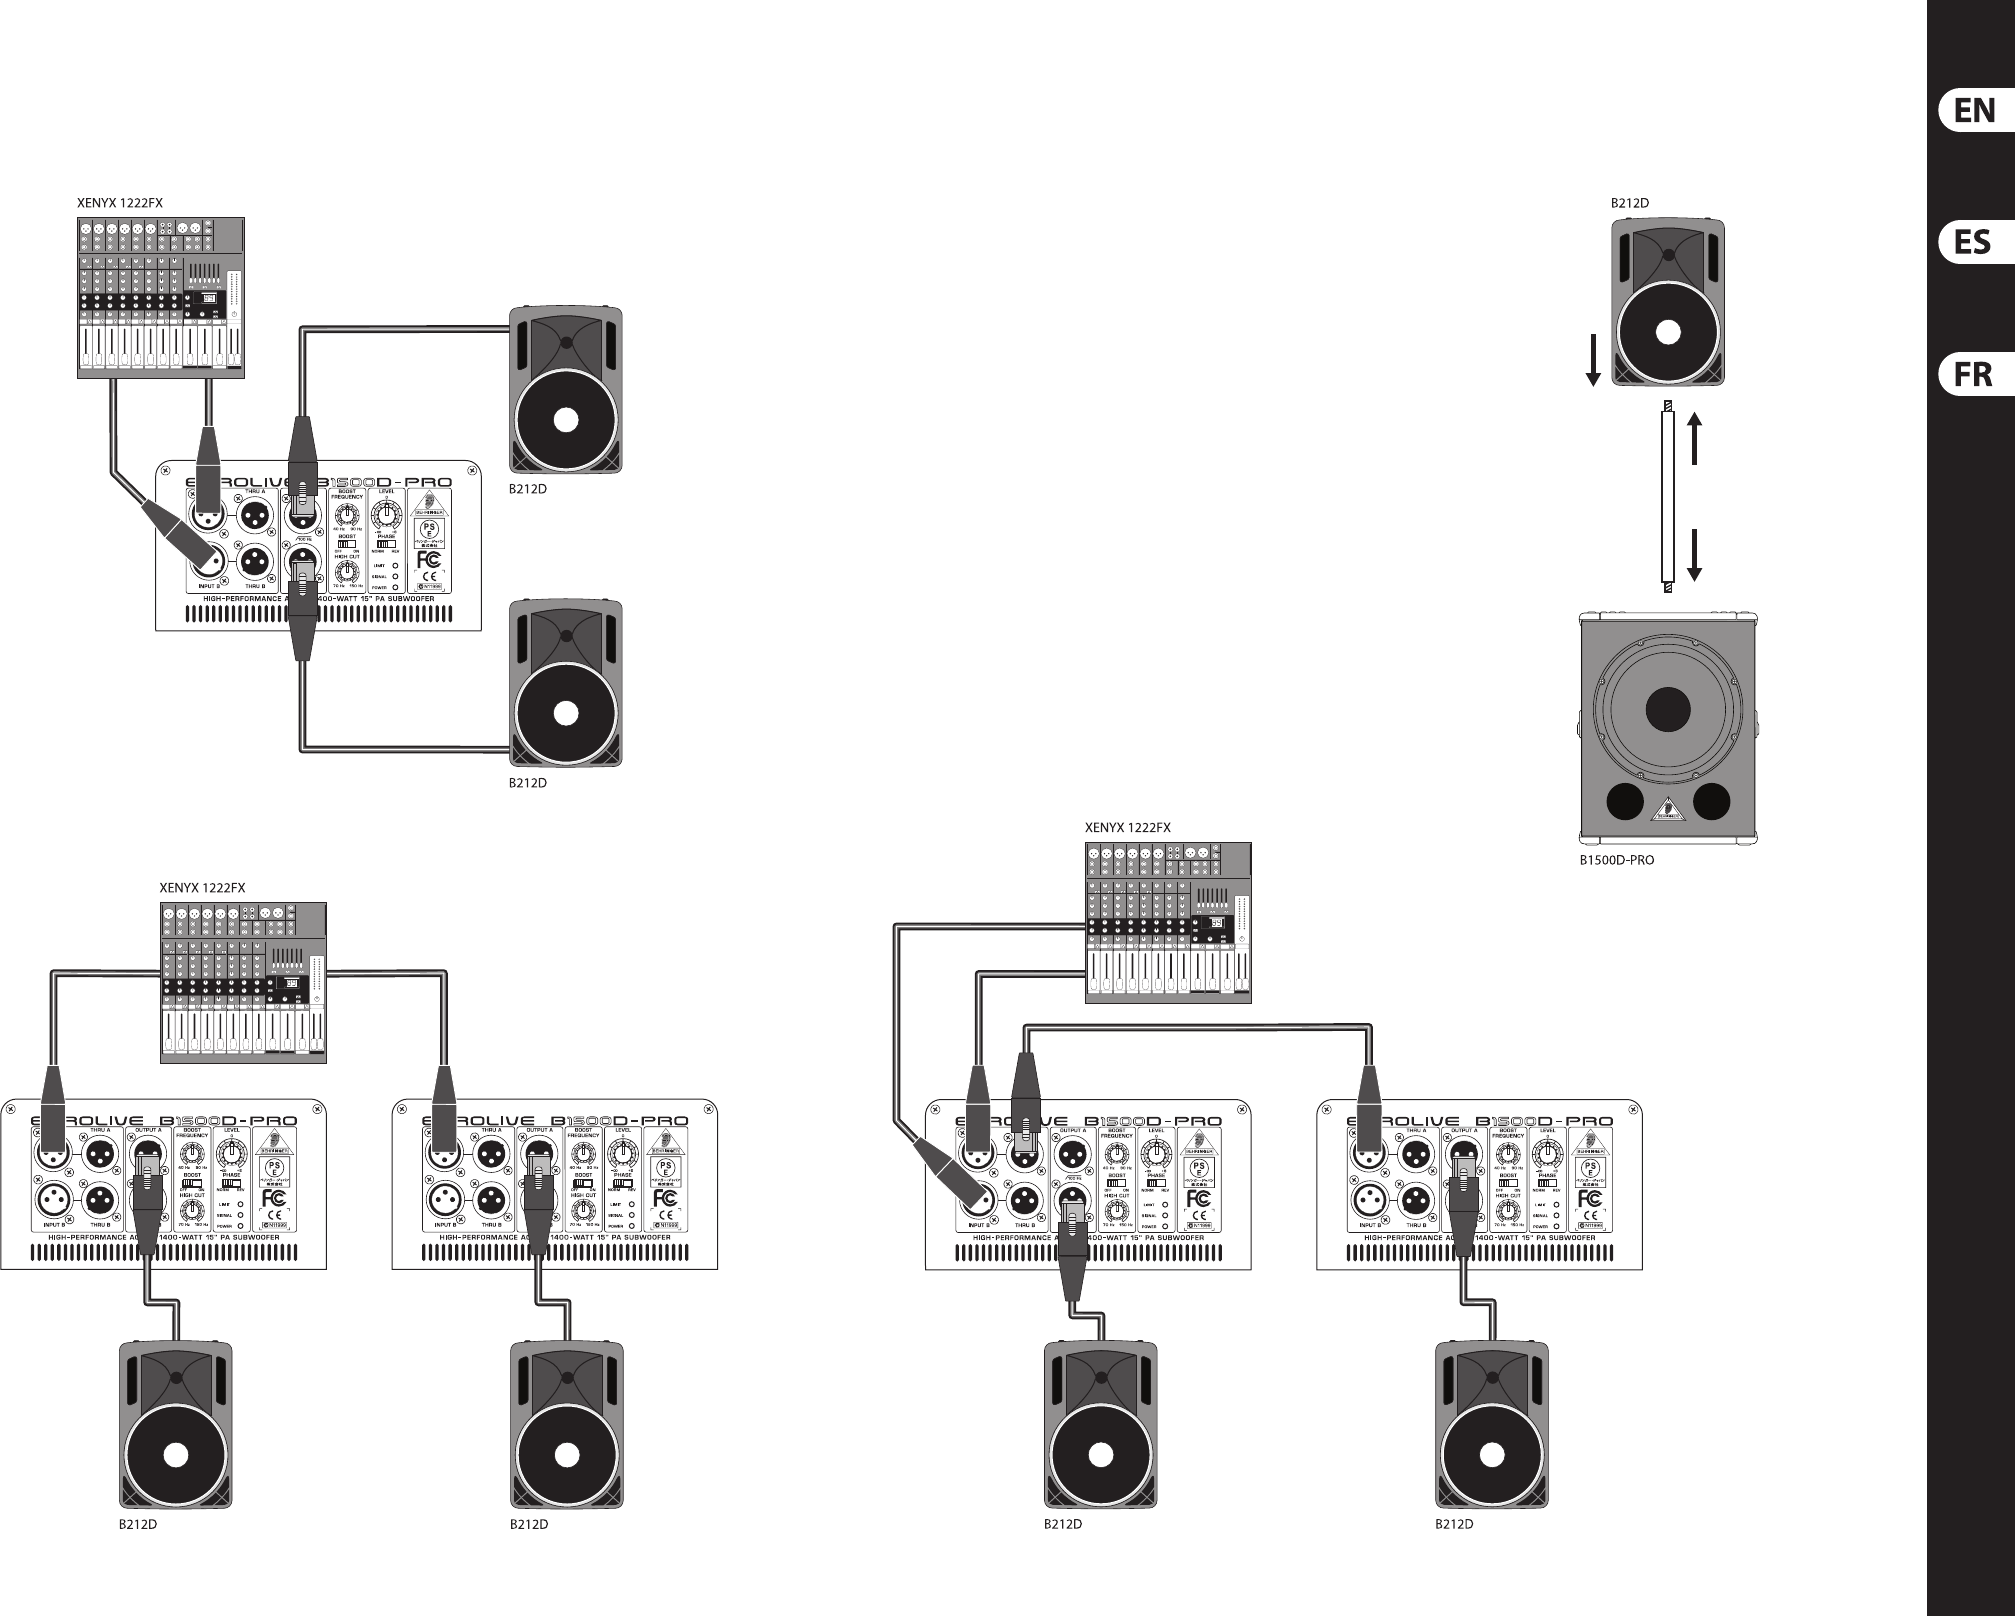 Pv900 pv700 furthermore Mtx Subwoofer Wiring Diagrams as well Dayton Audio Wave Link Wls System 24 Ghz Full Range Wireless Pair 300 594 moreover Speaker Fader Wiring Diagram in addition 1000 Watt Hood Cord Wiring Diagrams. on powered subwoofer installation